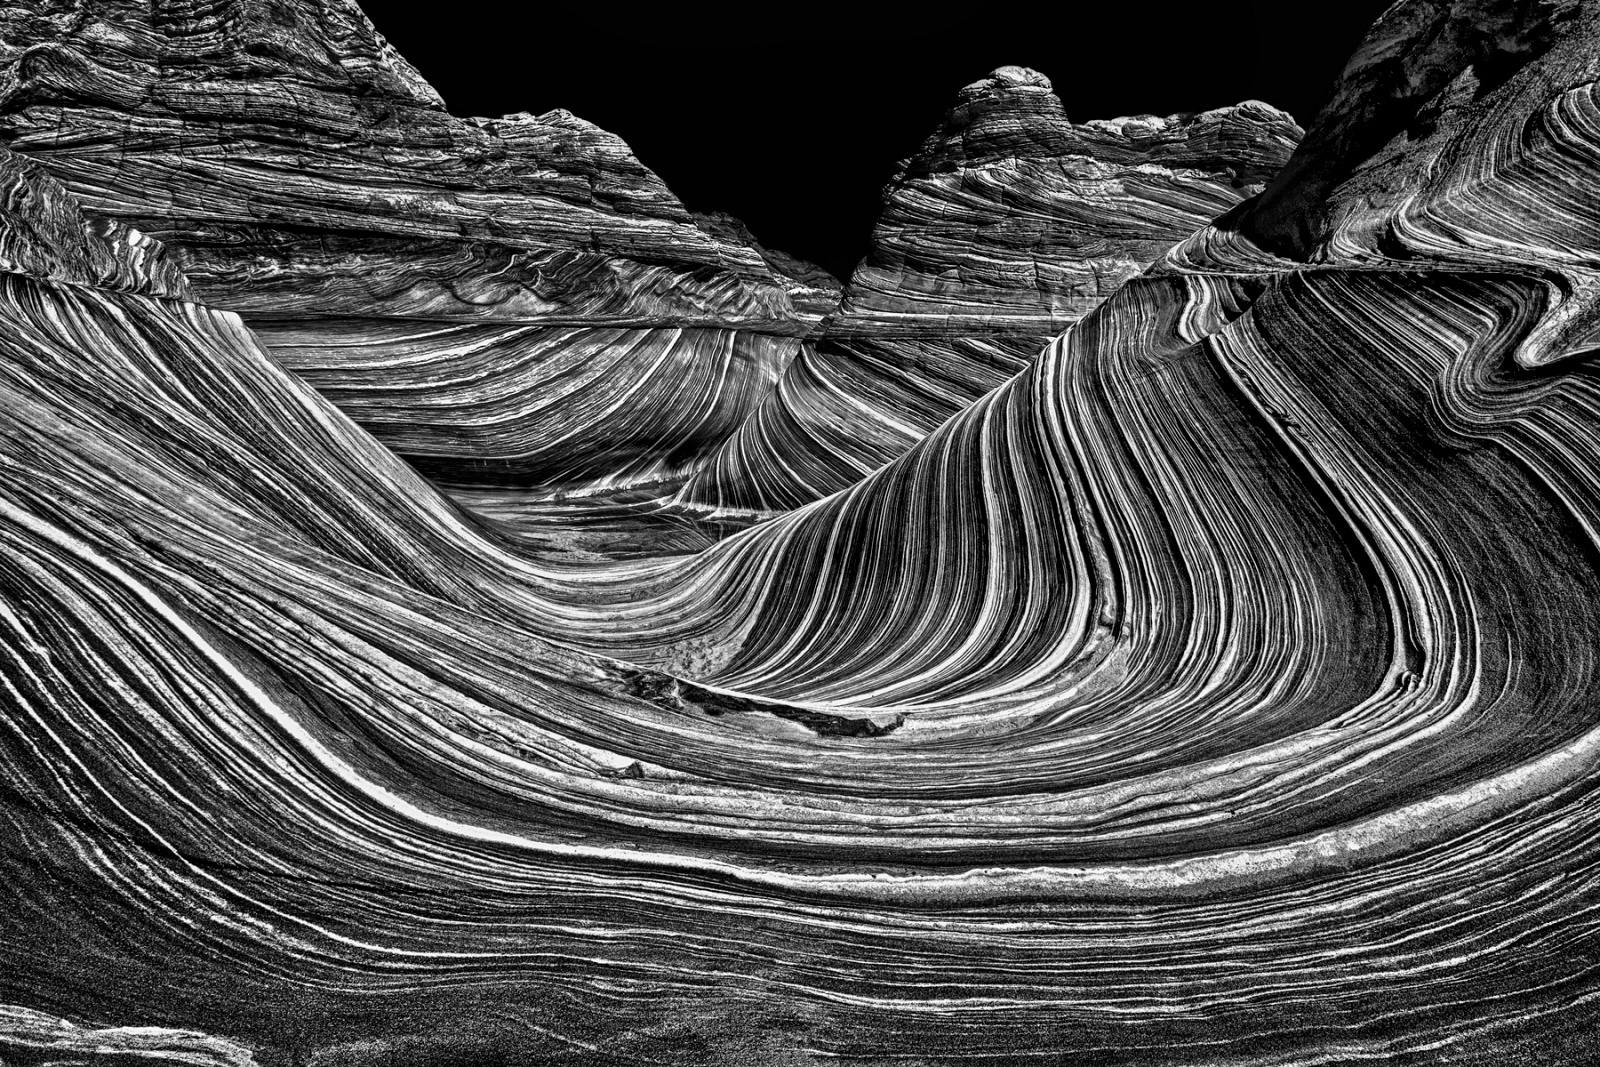 The Wave - Vermilion Cliffs Wilderness, Arizona, 2012 